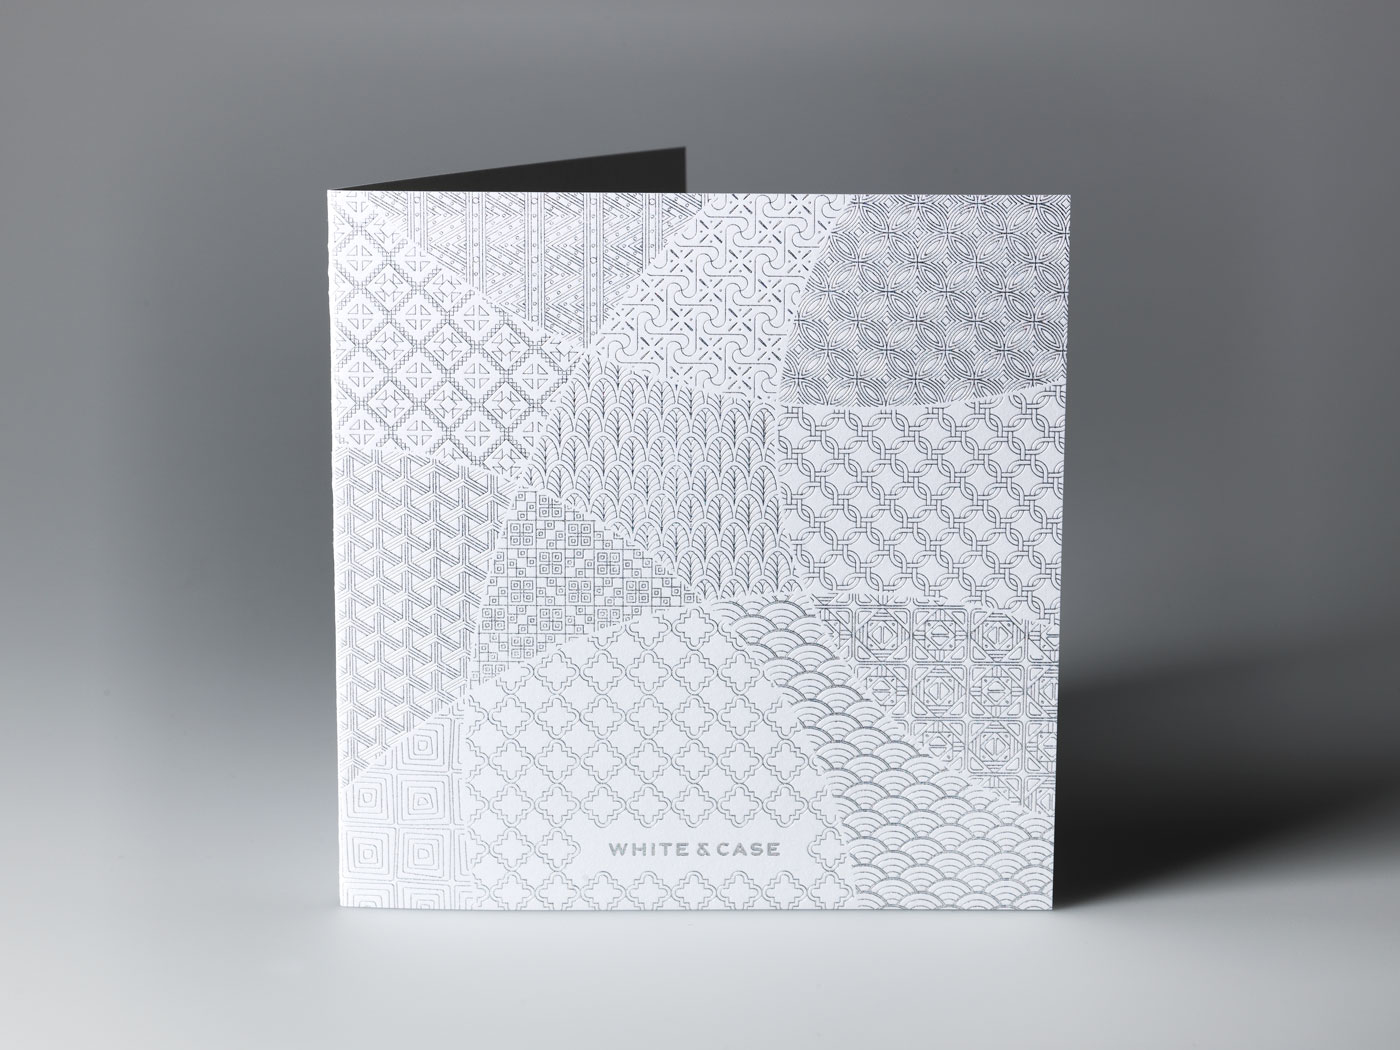 White & Case Holiday Card